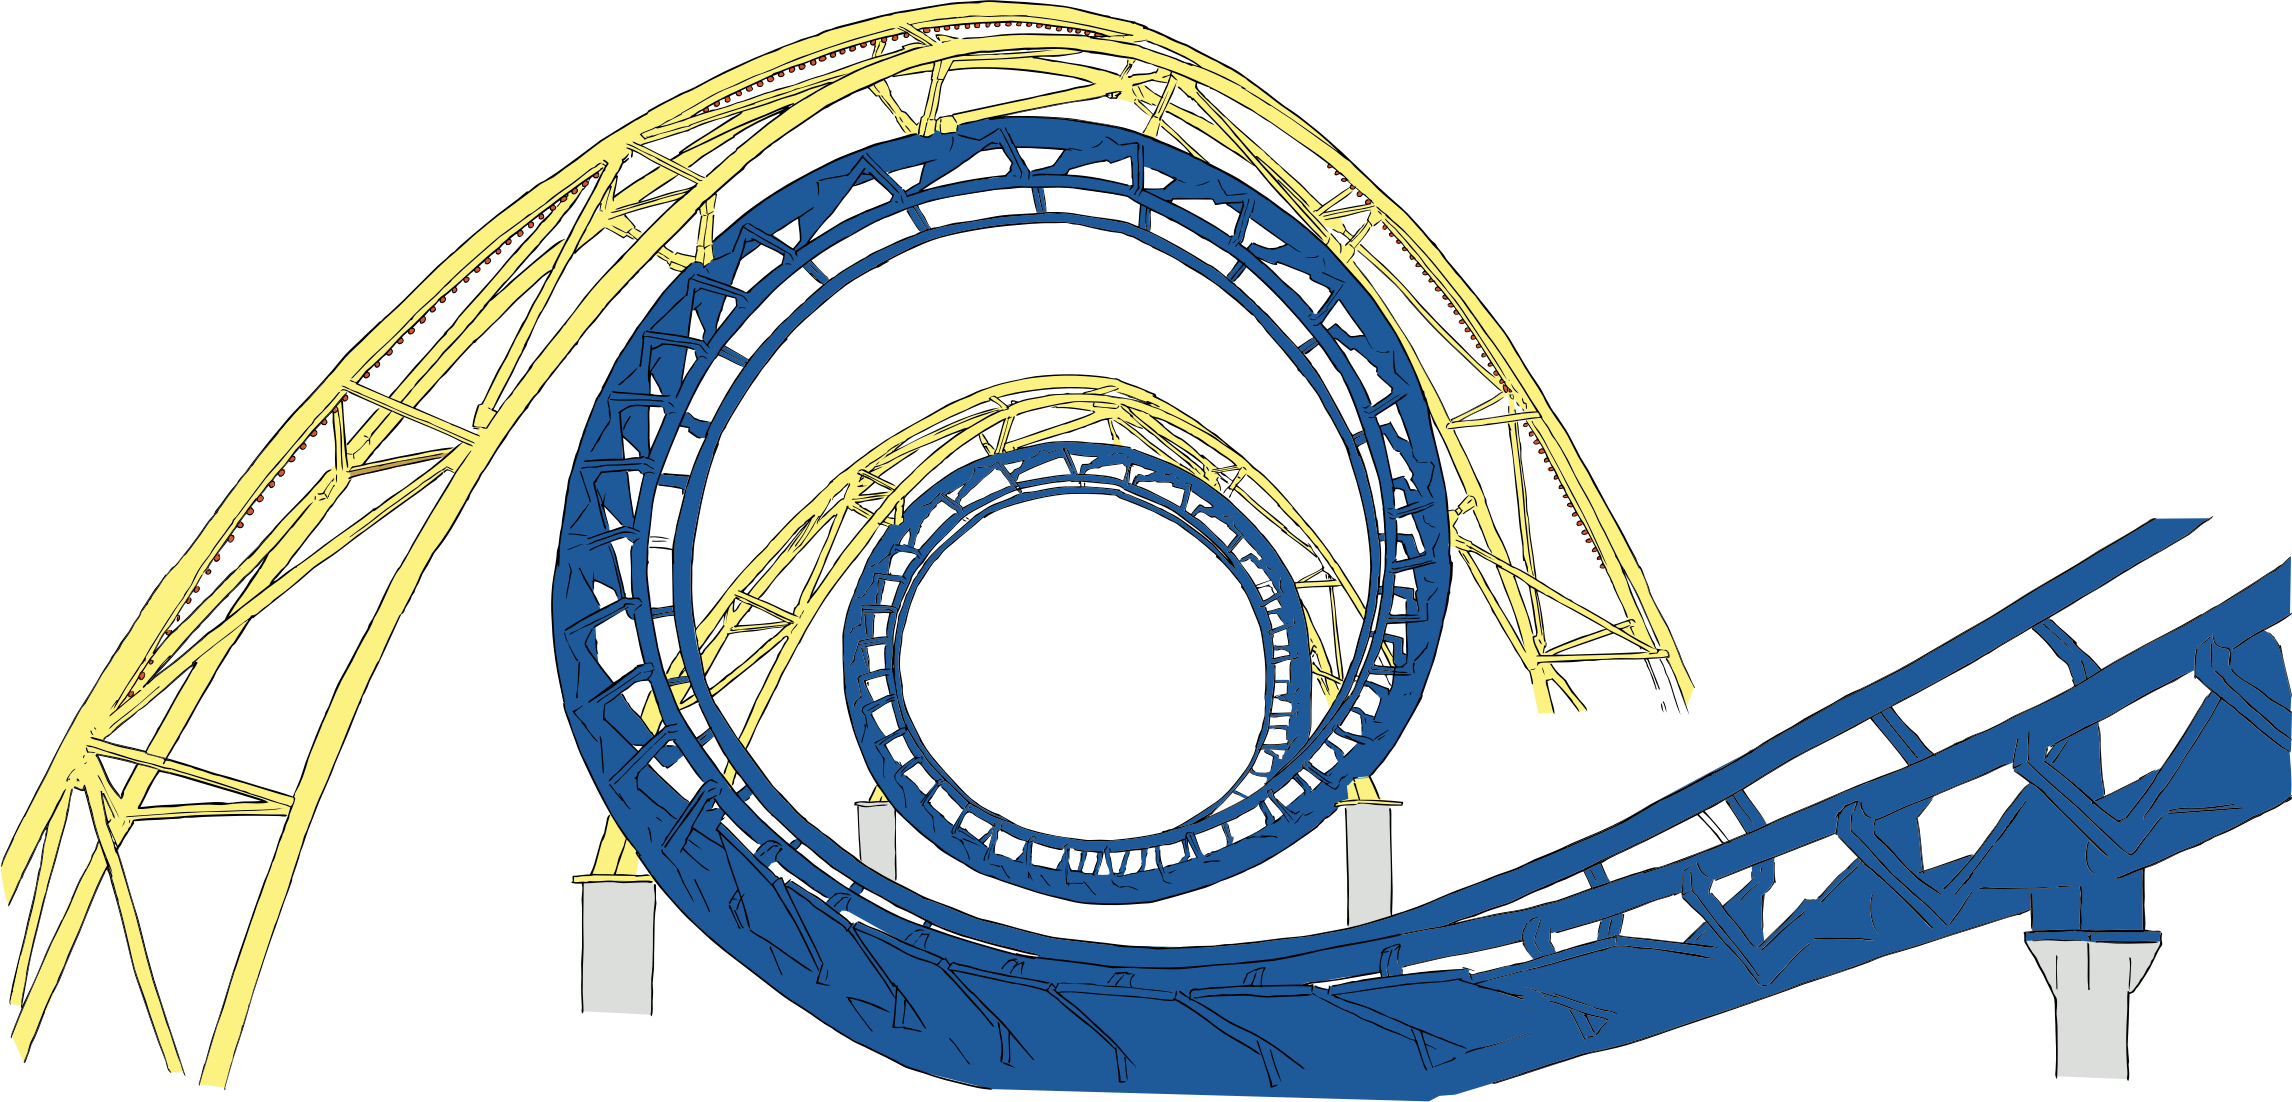 image free download Roller coaster tracks big. Rollercoaster clipart.